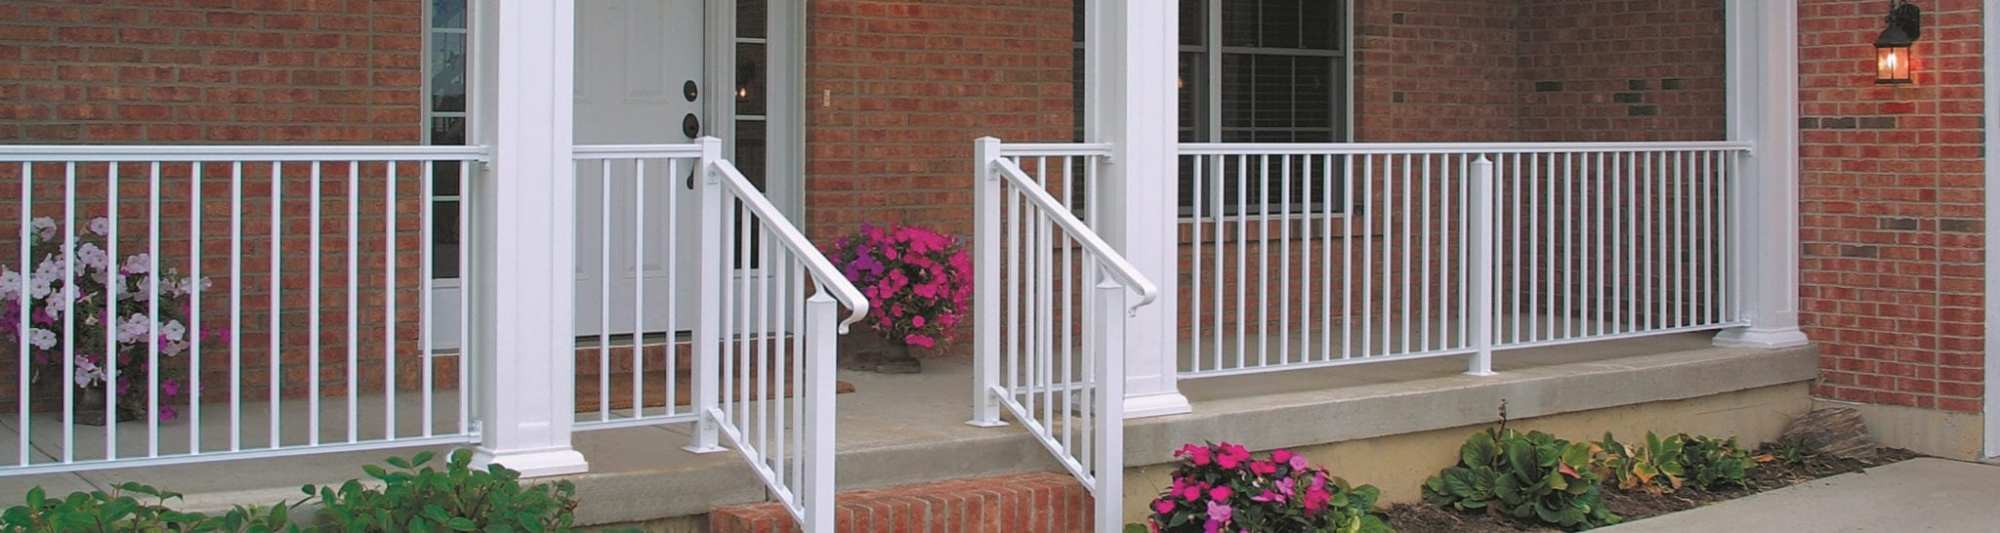 hight resolution of residential railings and columns